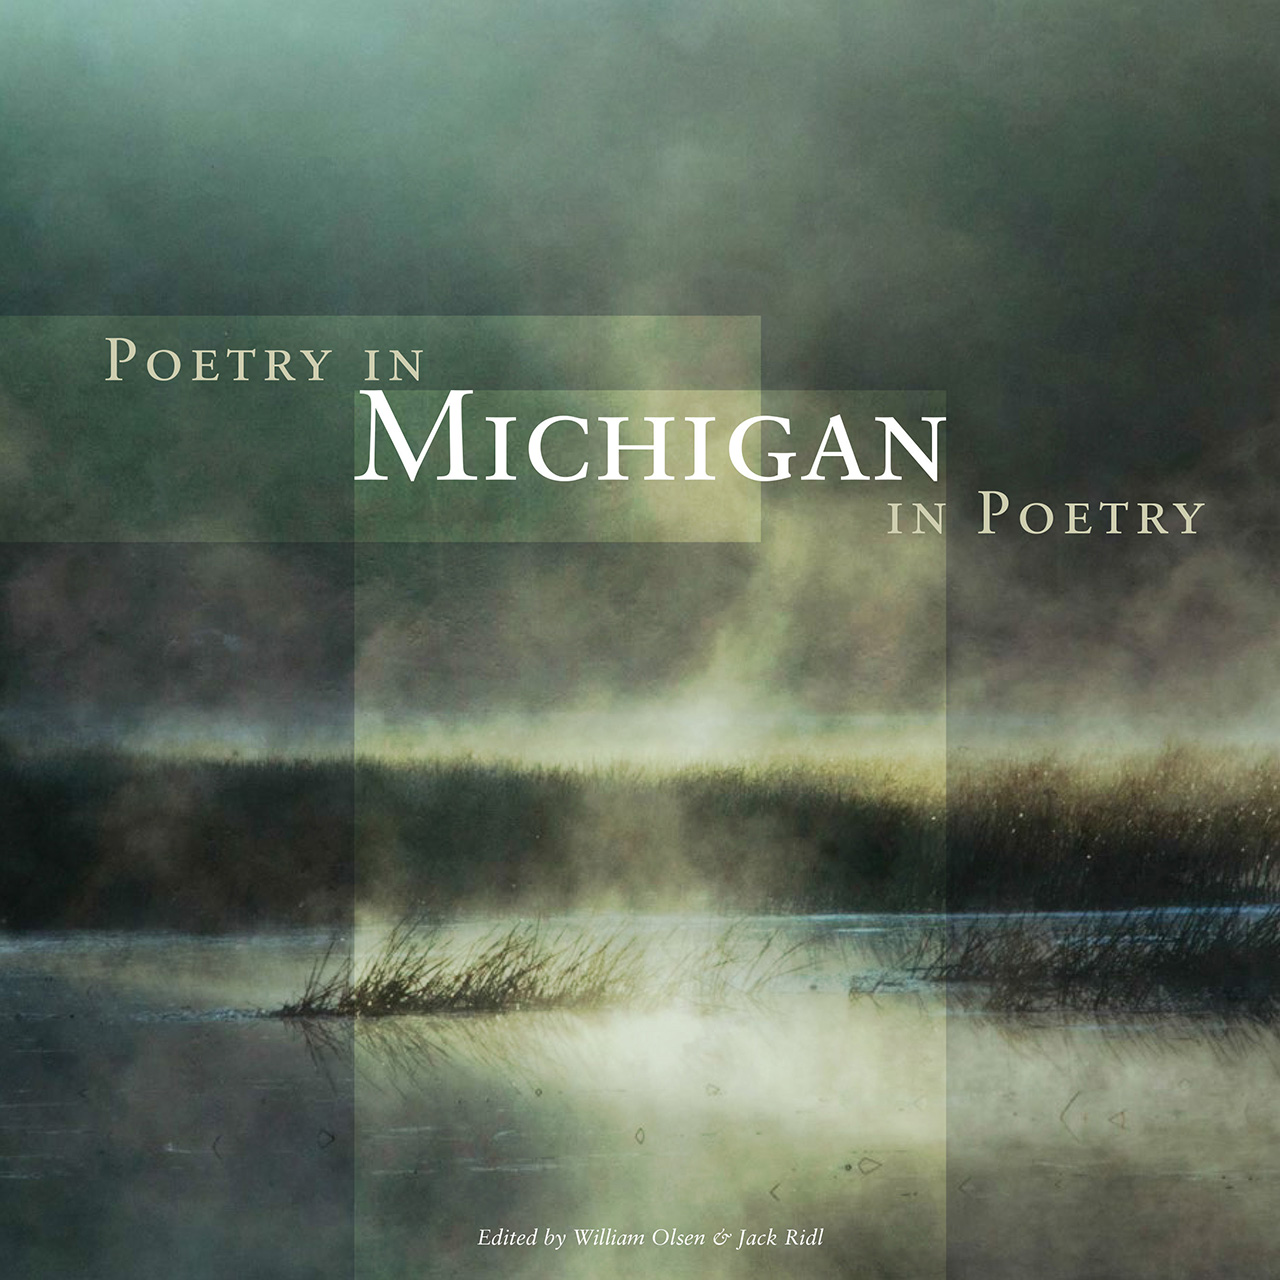 Poetry in Michigan / Michigan in Poetry